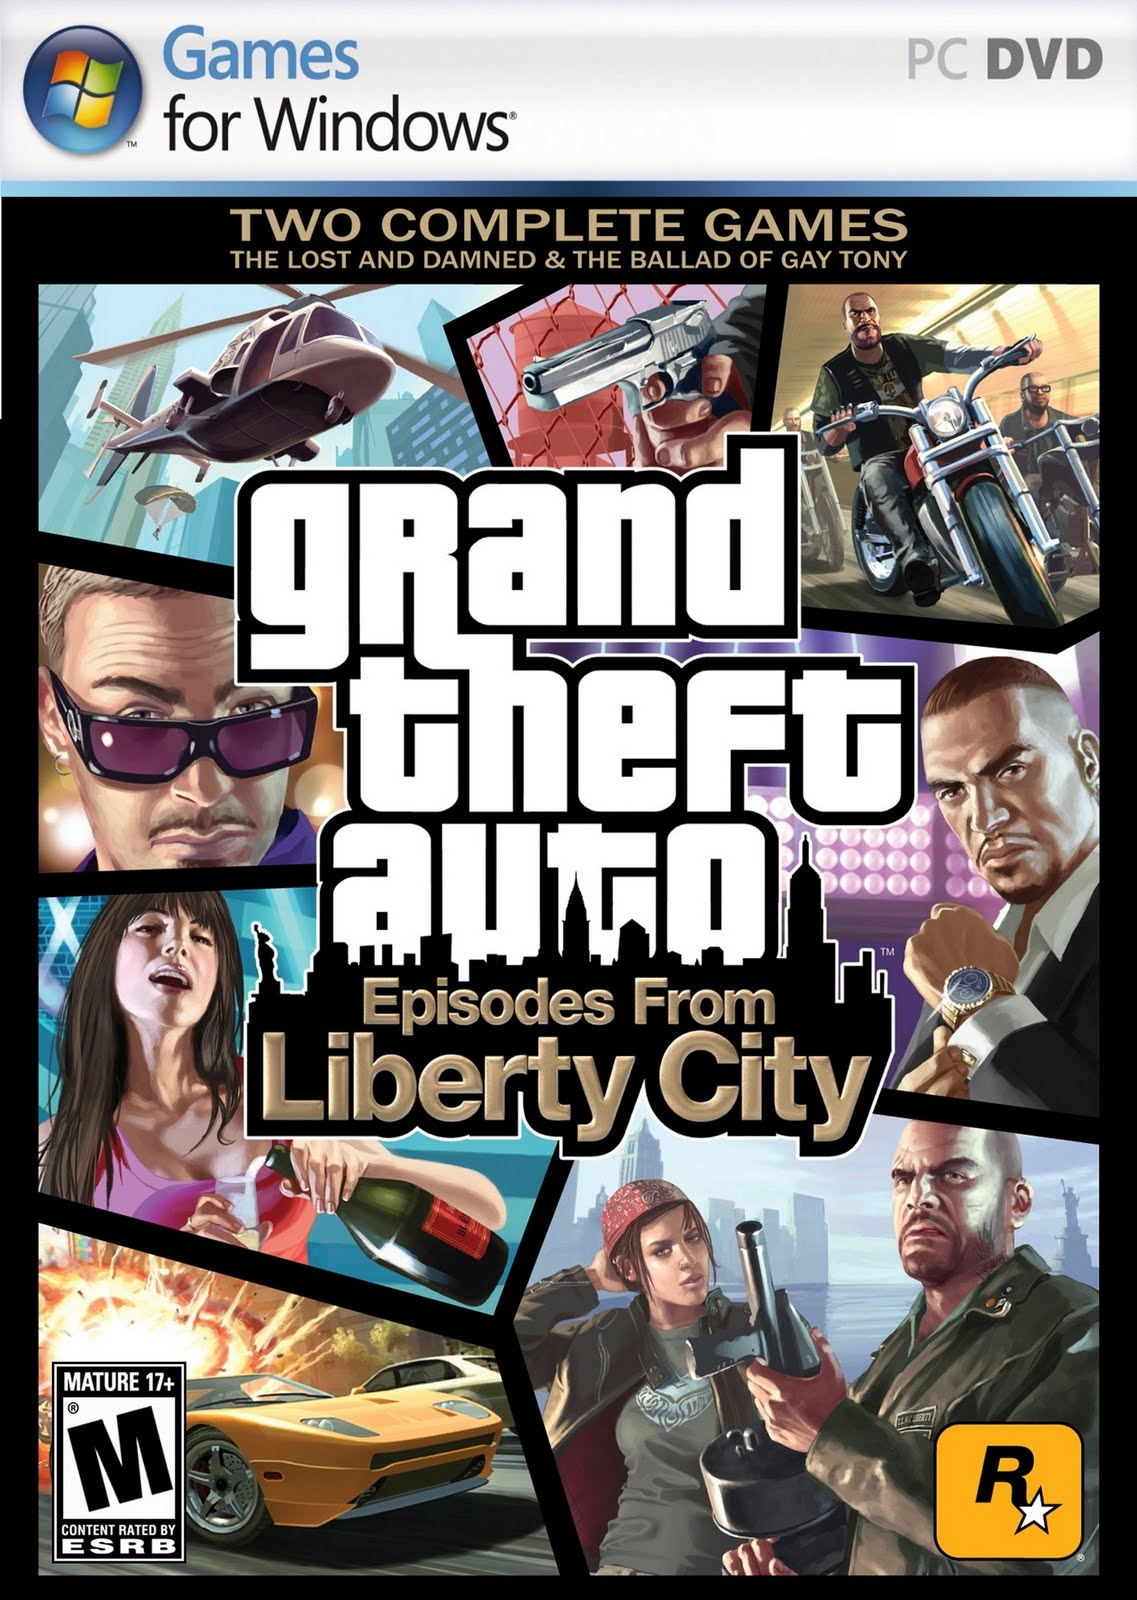 Dream Games: GTA IV : Episodes from Liberty City